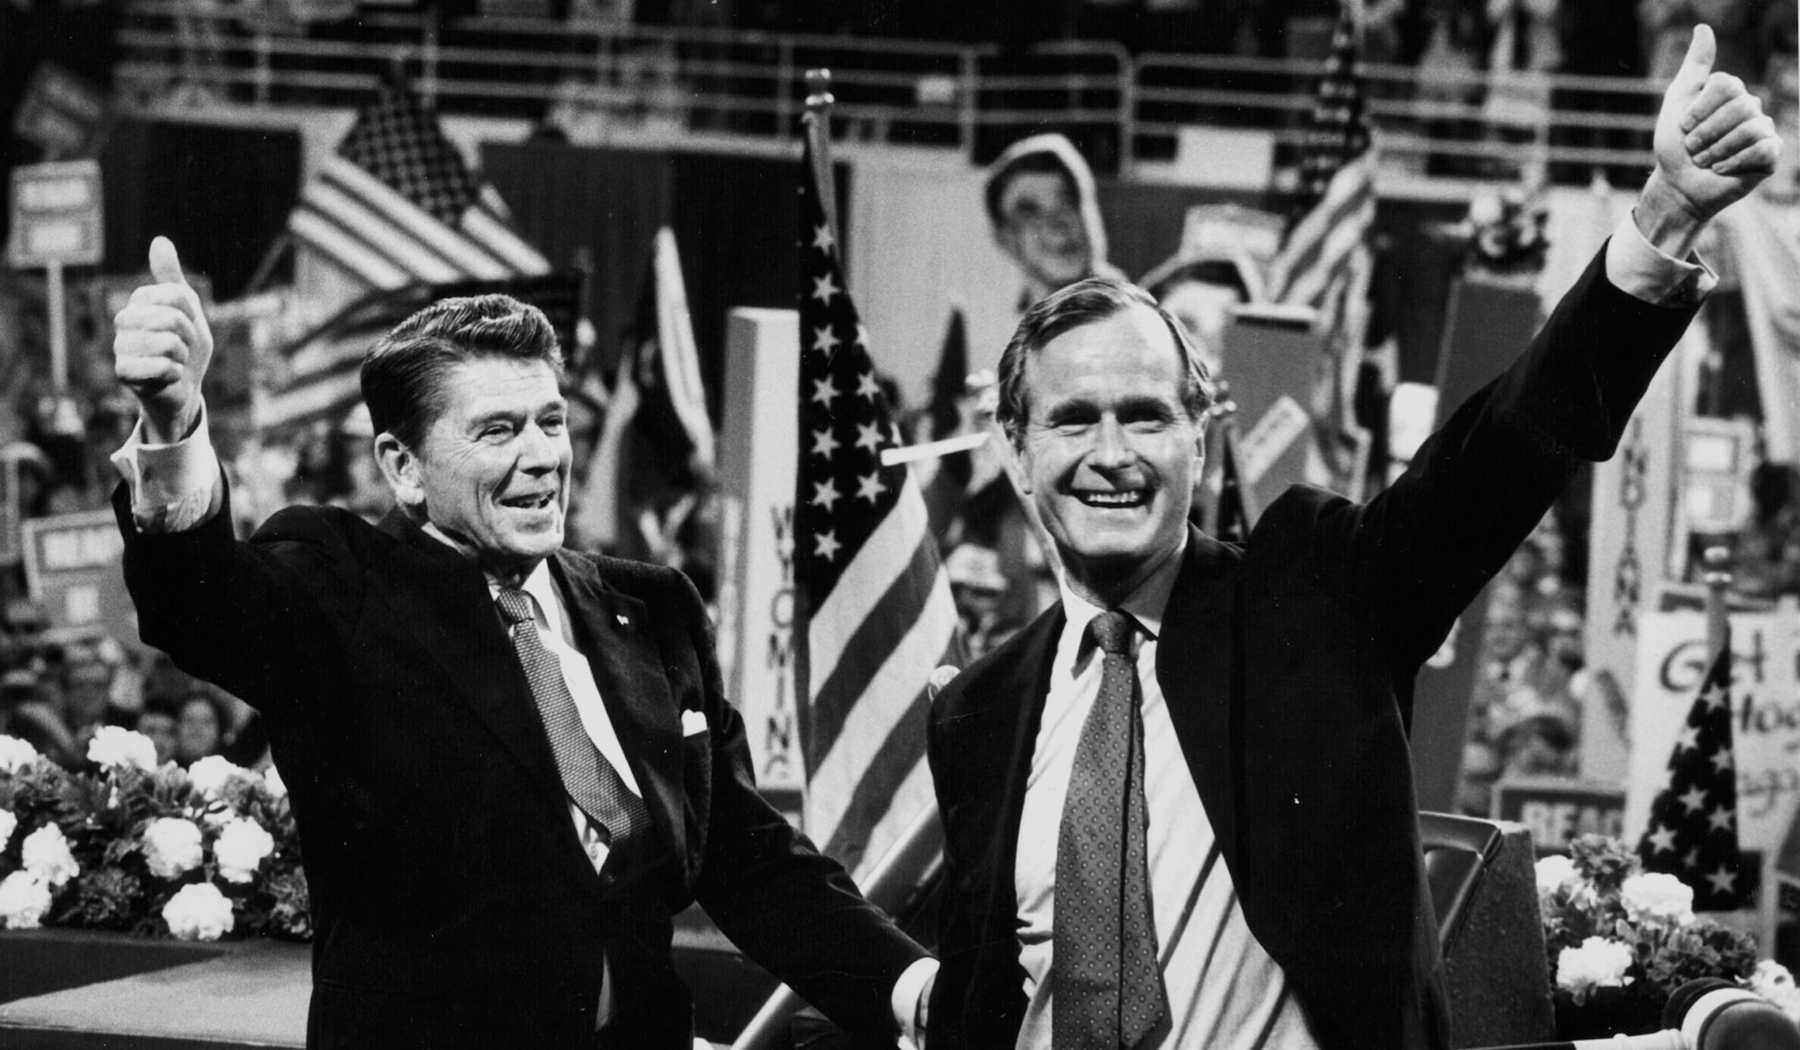 an analysis of republican reagans trade policy proposal during the 1980 presidential campaigns